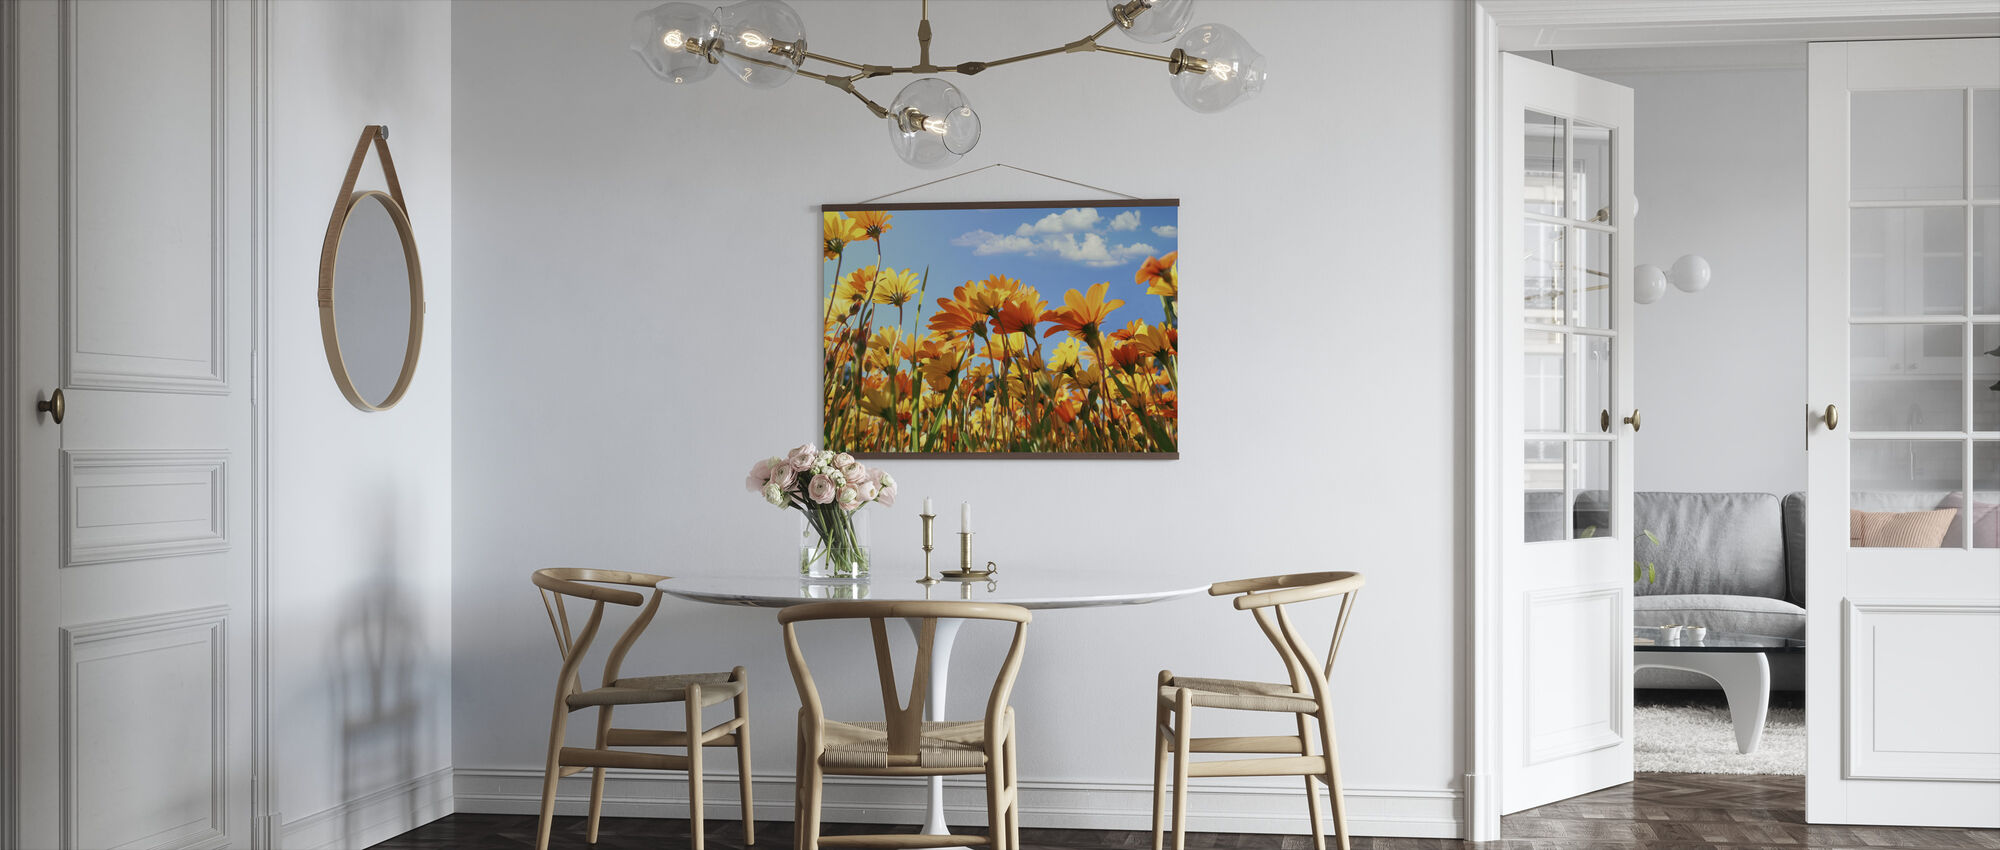 Spring Orange and Yellow Wildflowers - Poster - Kitchen